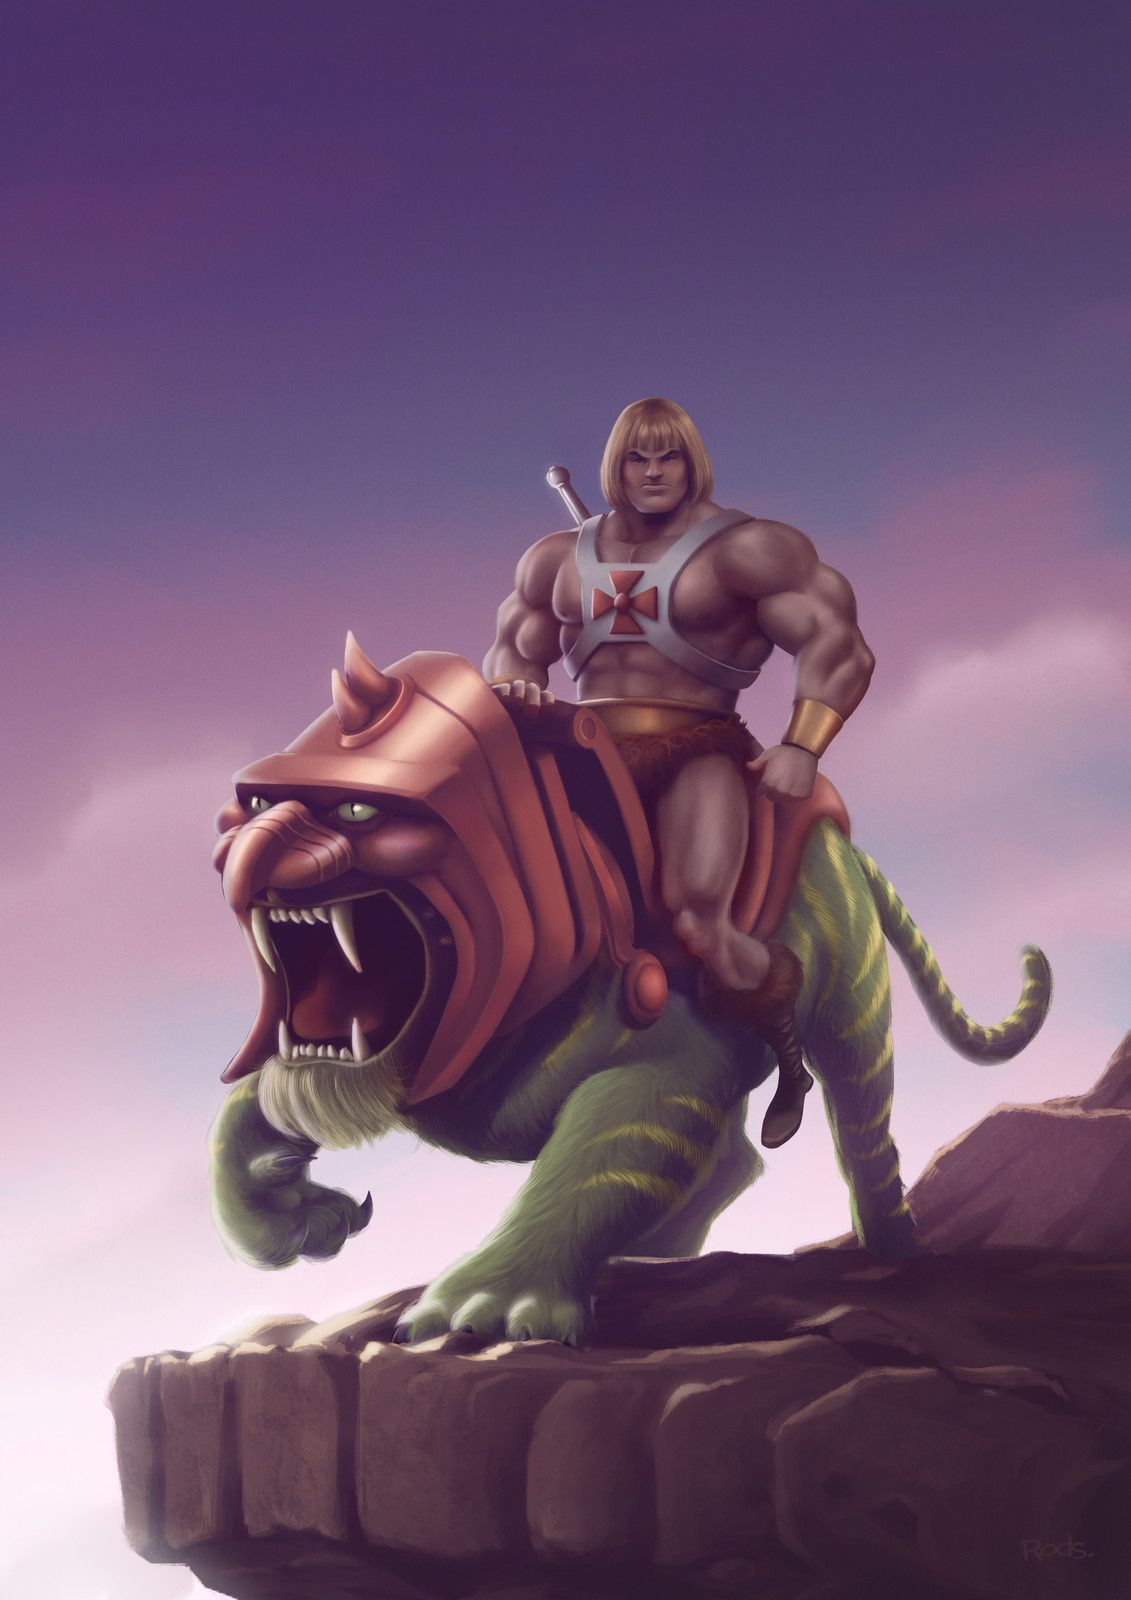 He Man And Battle Cat Rod Rods On Artstation At Https Www